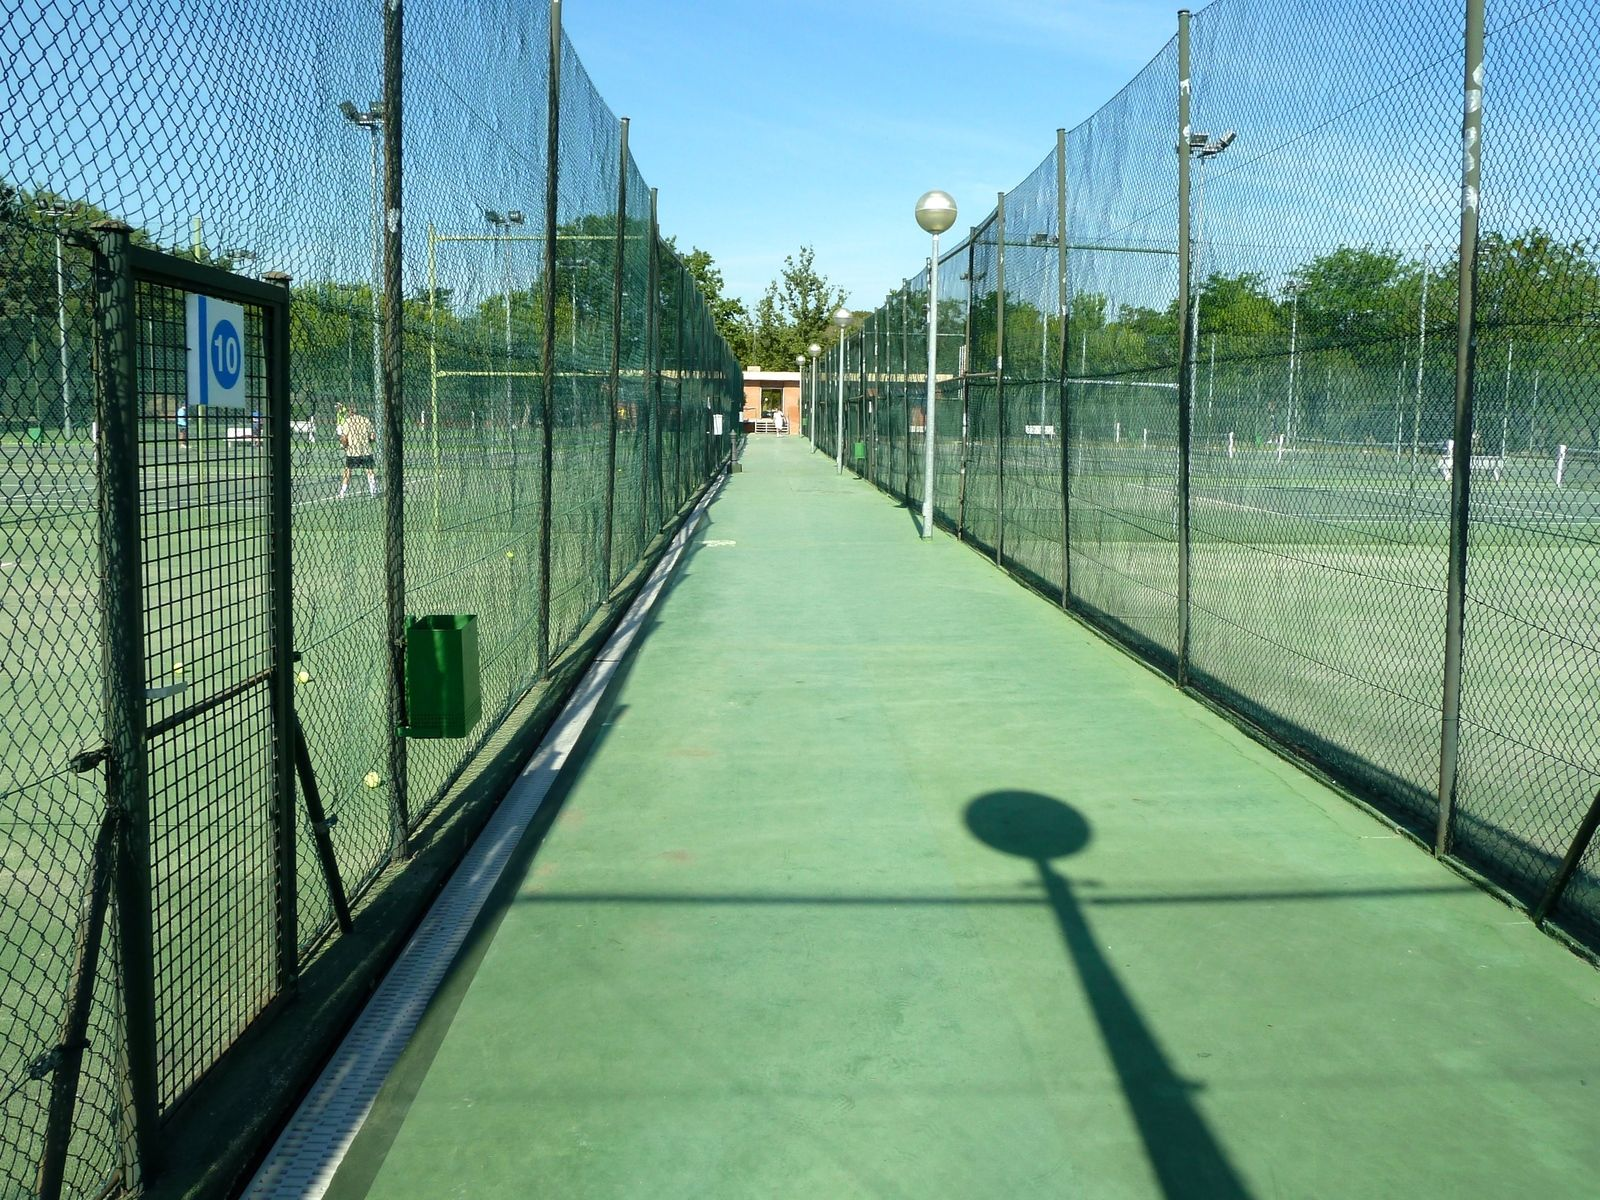 tennis-tourist-madrid-spain-casa-de-campo-tennis-courts--between-courts-teri-church